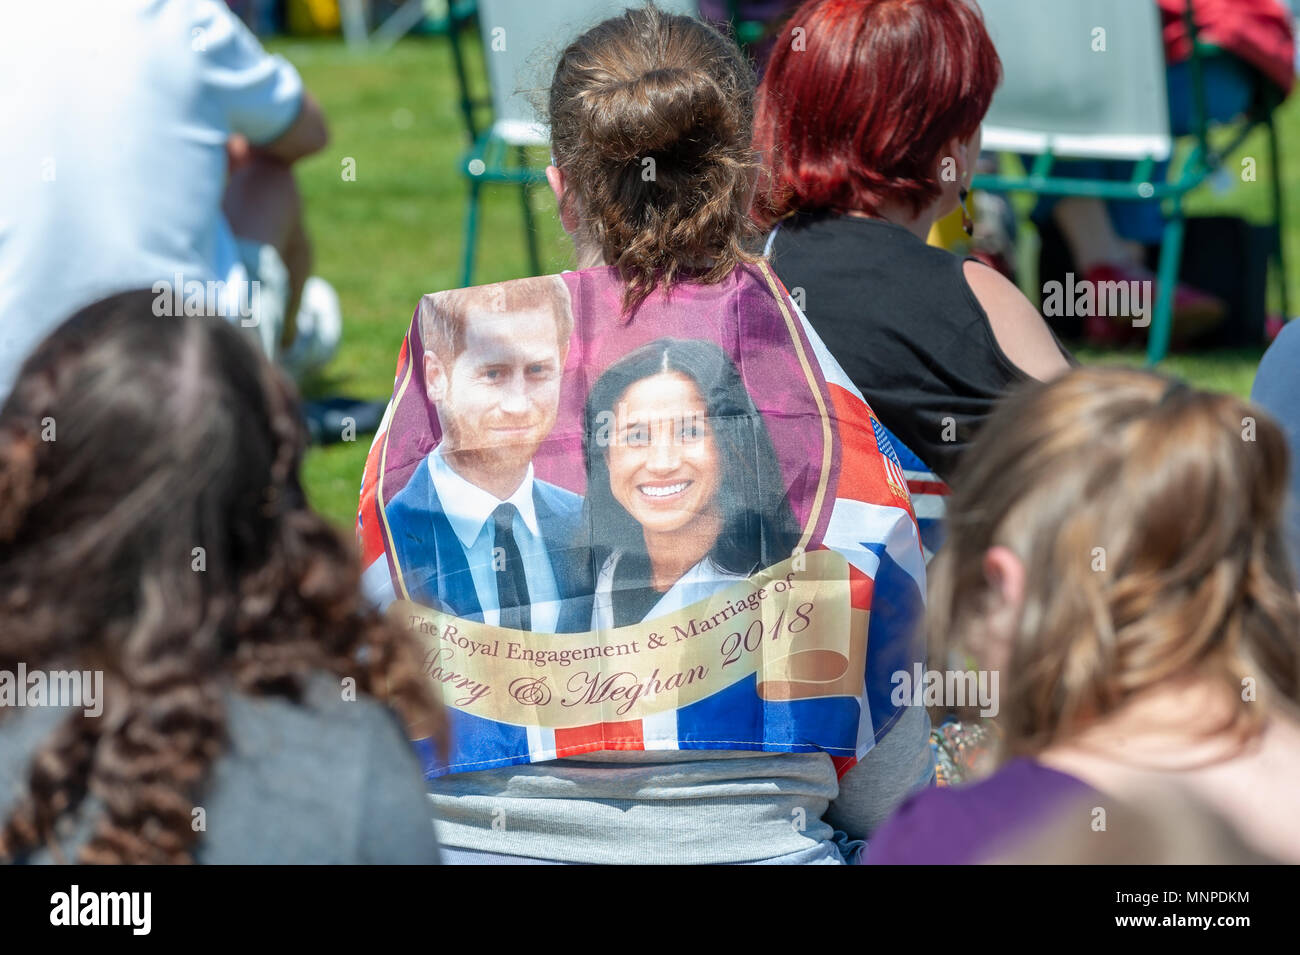 A person with a flag with the faces of Prince Harry and Meghan Markle on it at a Royal wedding event in Bexhill On Sea, East Sussex, England. Stock Photo